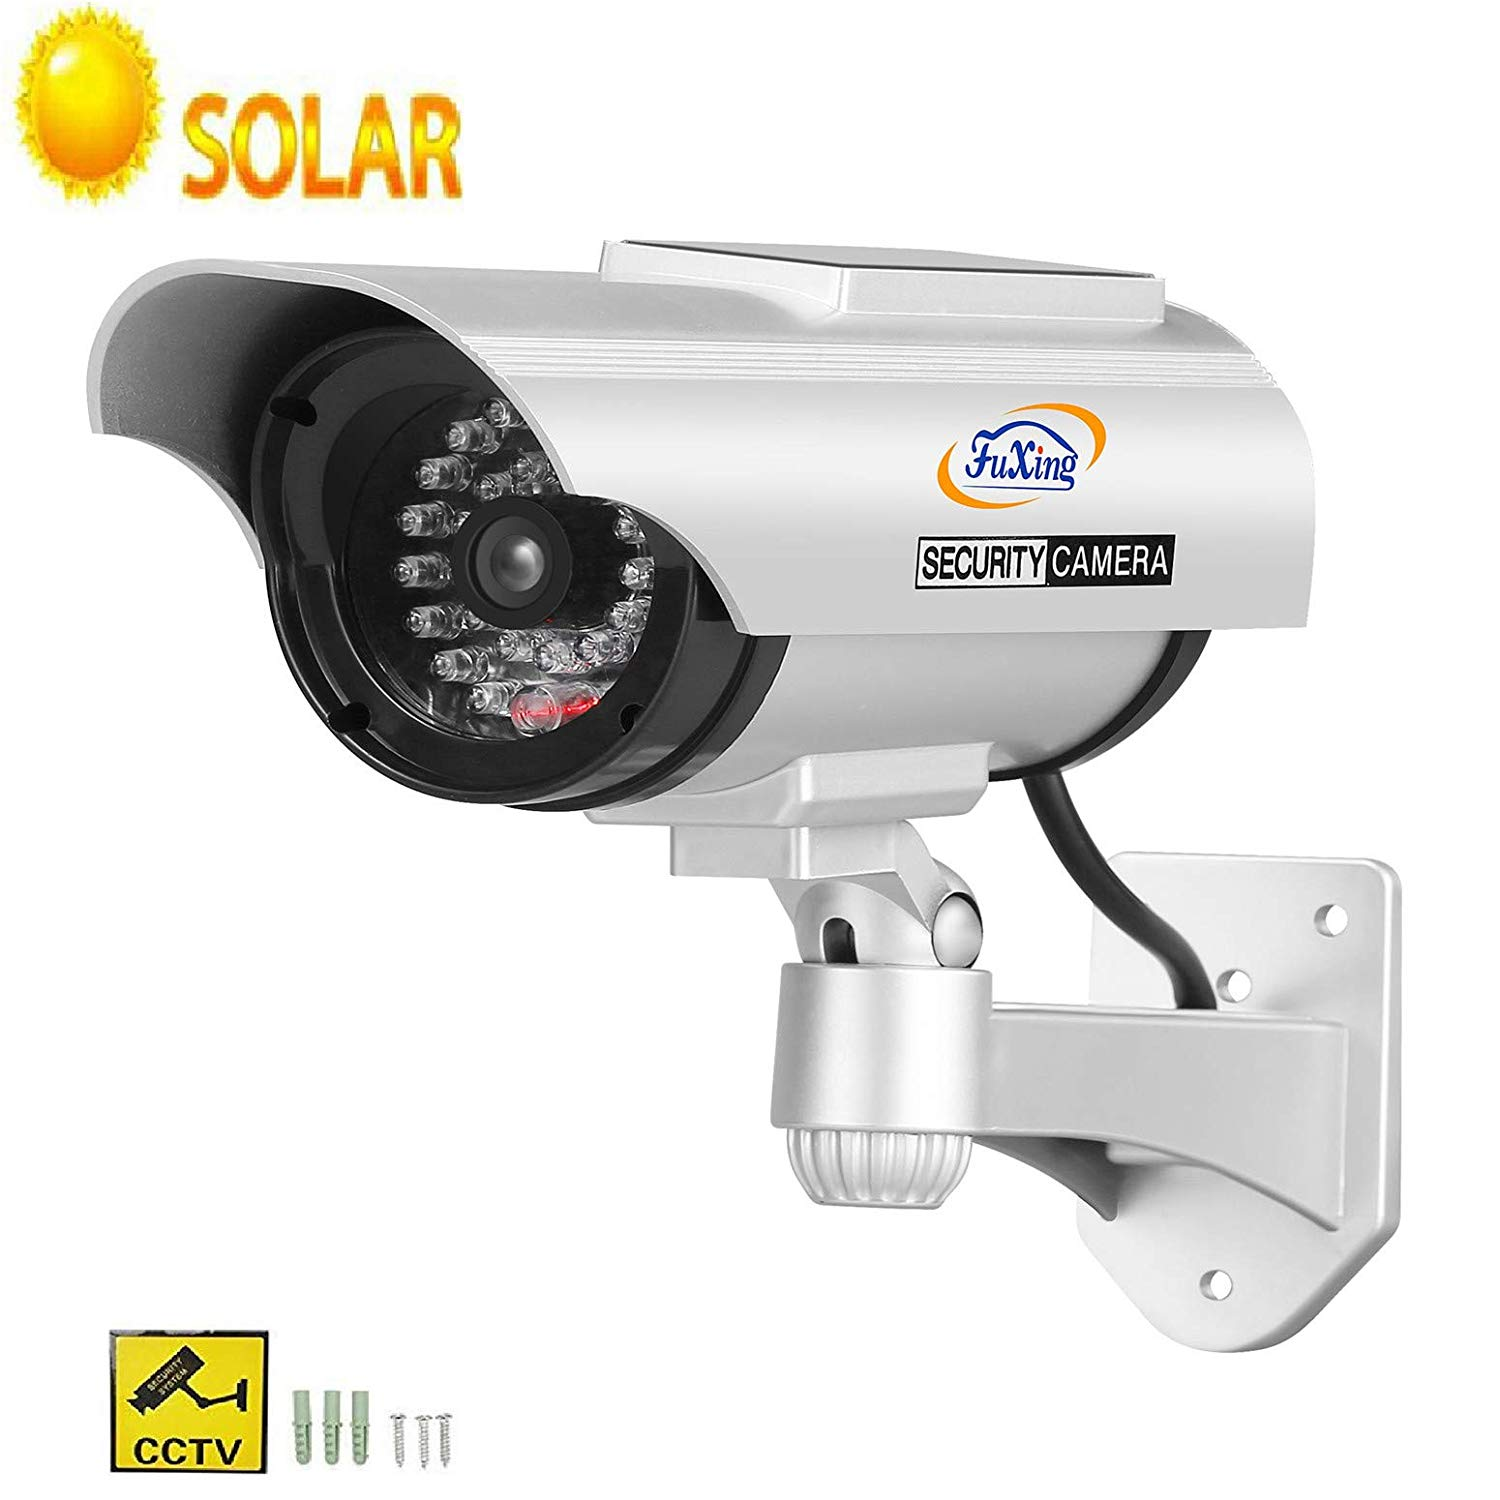 FX Solar Fake Dummy CCTV Security Surveillance Camera with Solar Pannel for Blinking Red LED Light with CCTV Warning Signs Sticker